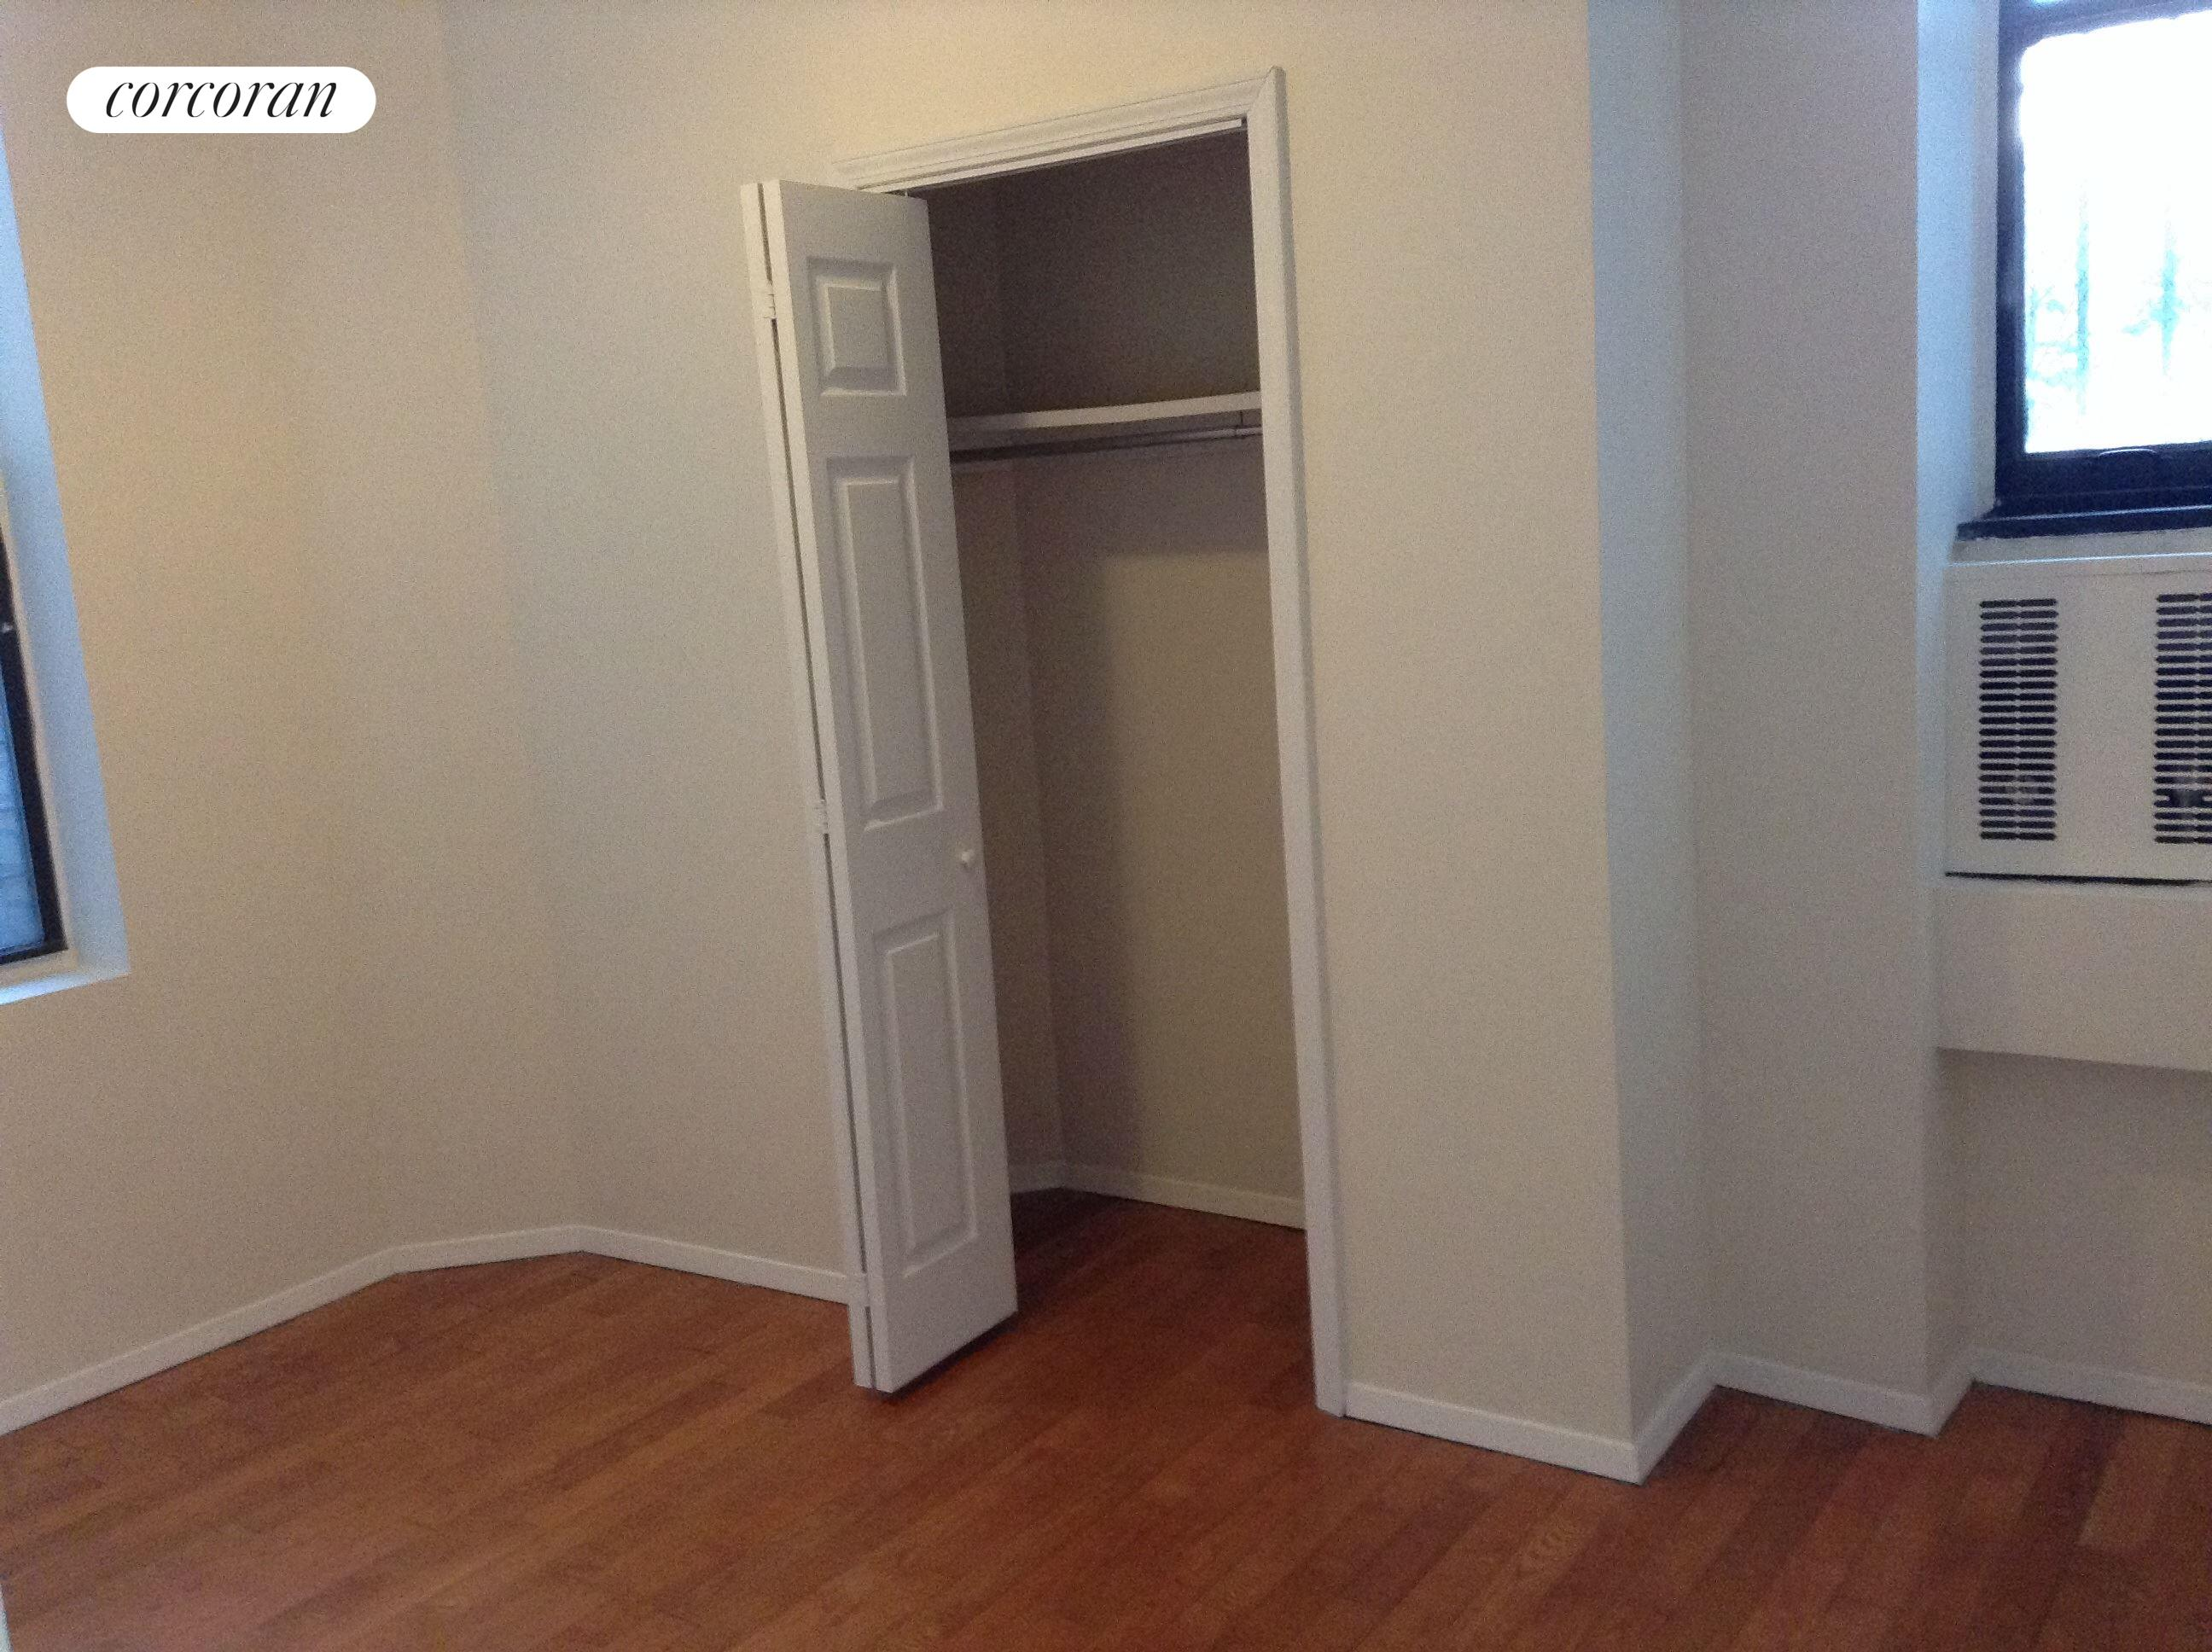 584 Myrtle Avenue, Apt. 2D, Fort Greene